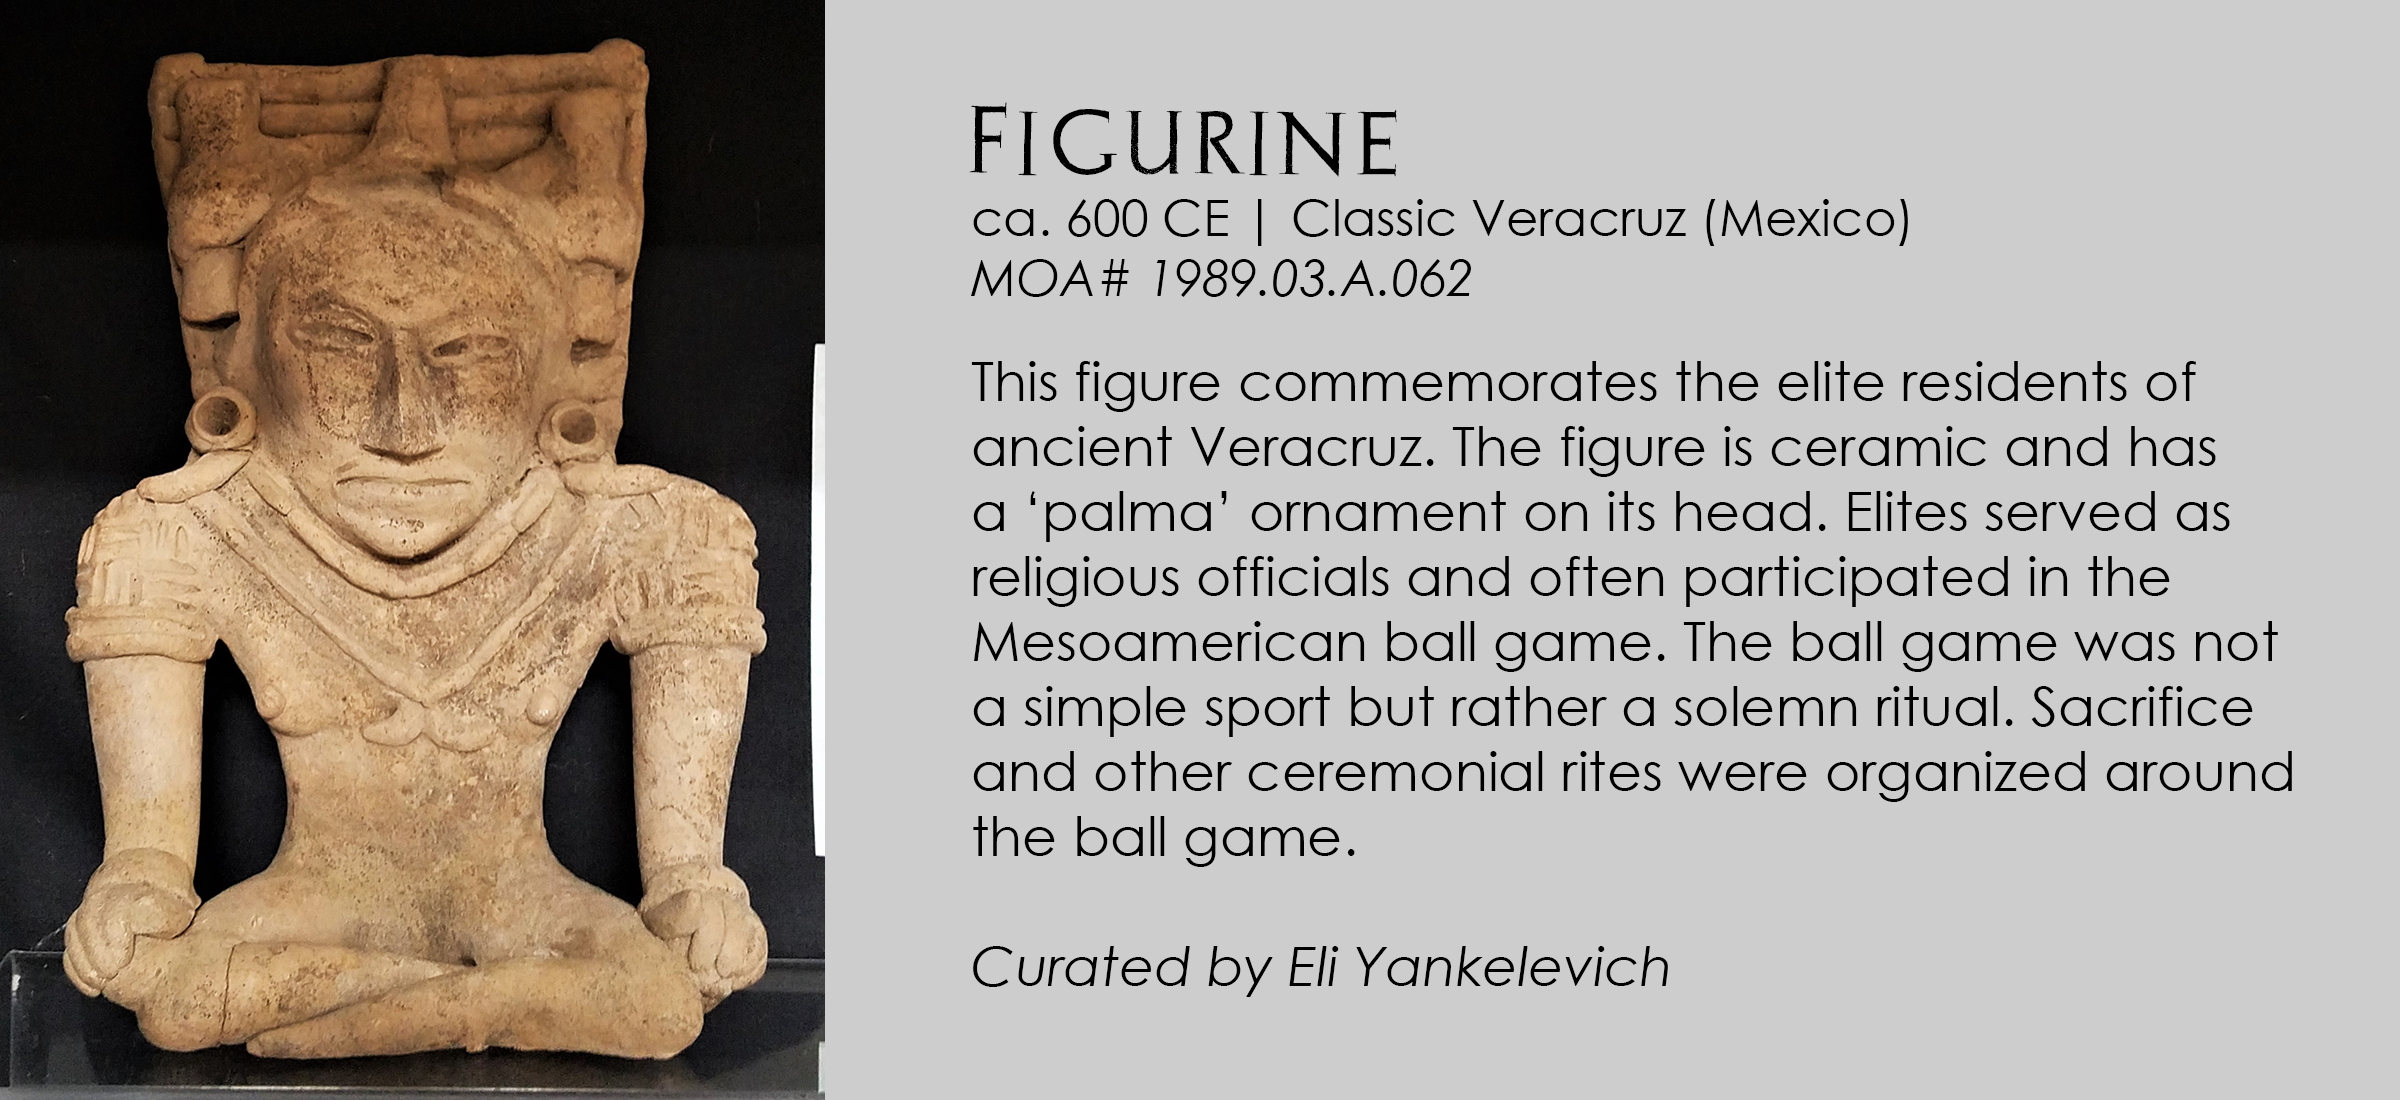 Classic Verracruz figurine from Mexico